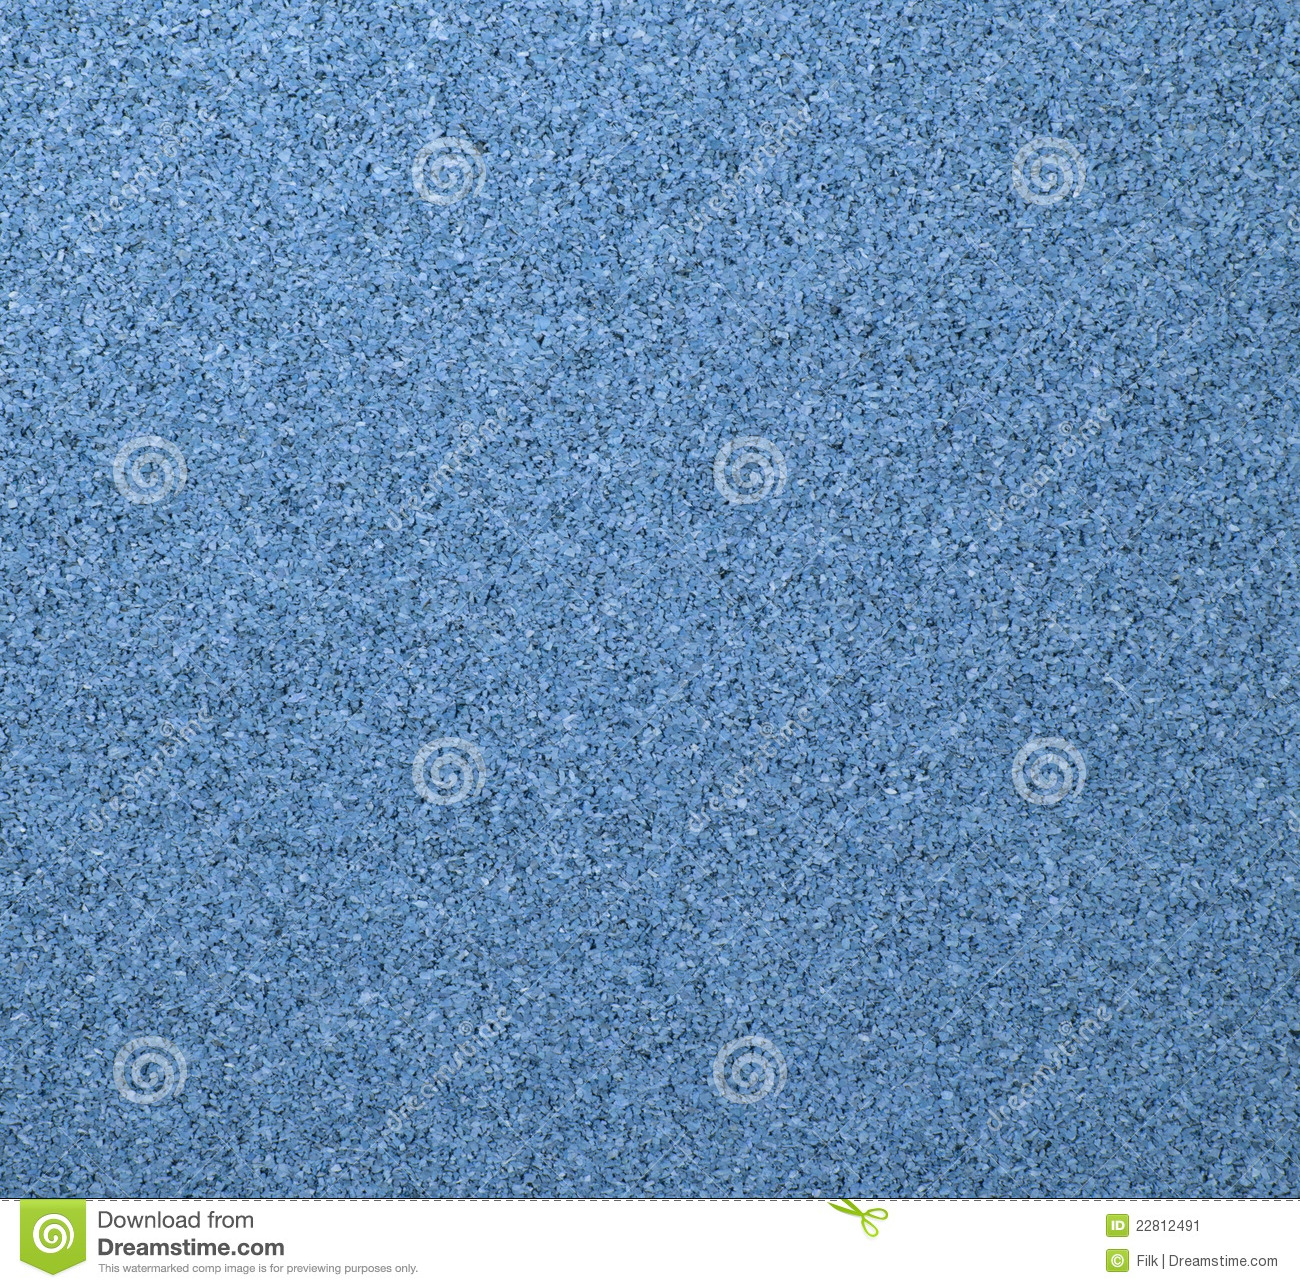 Blue cork board texture stock image. Image of border ...